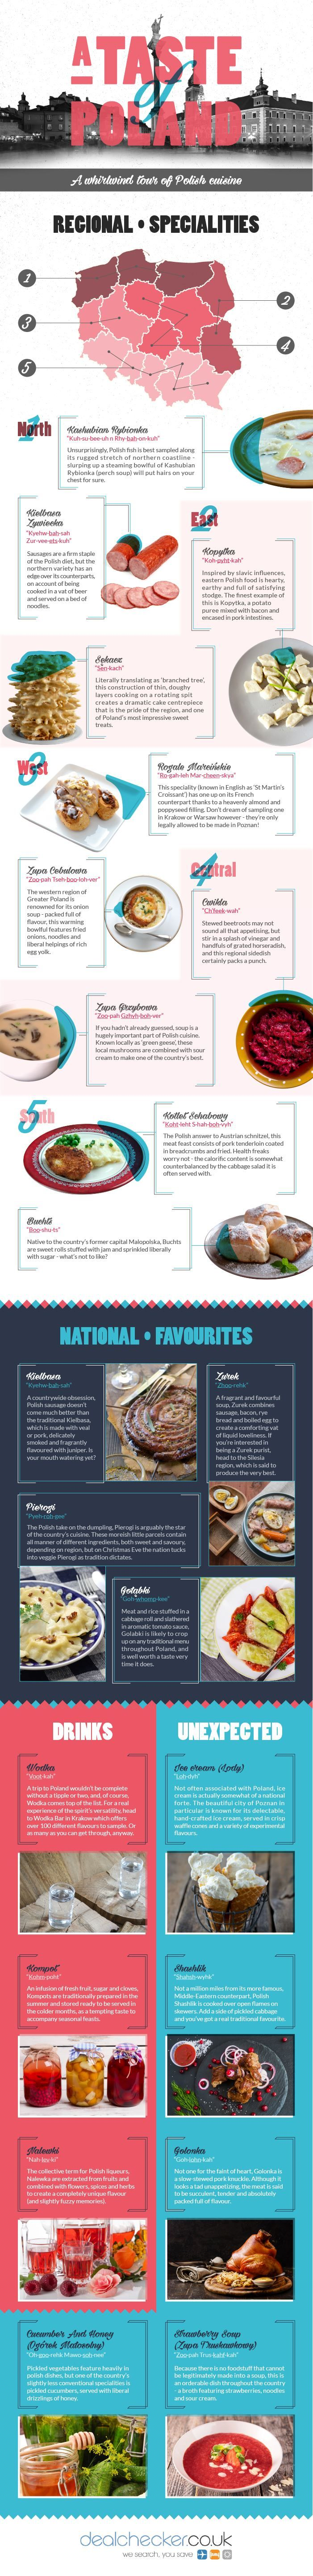 A Taste of Poland #Infographic